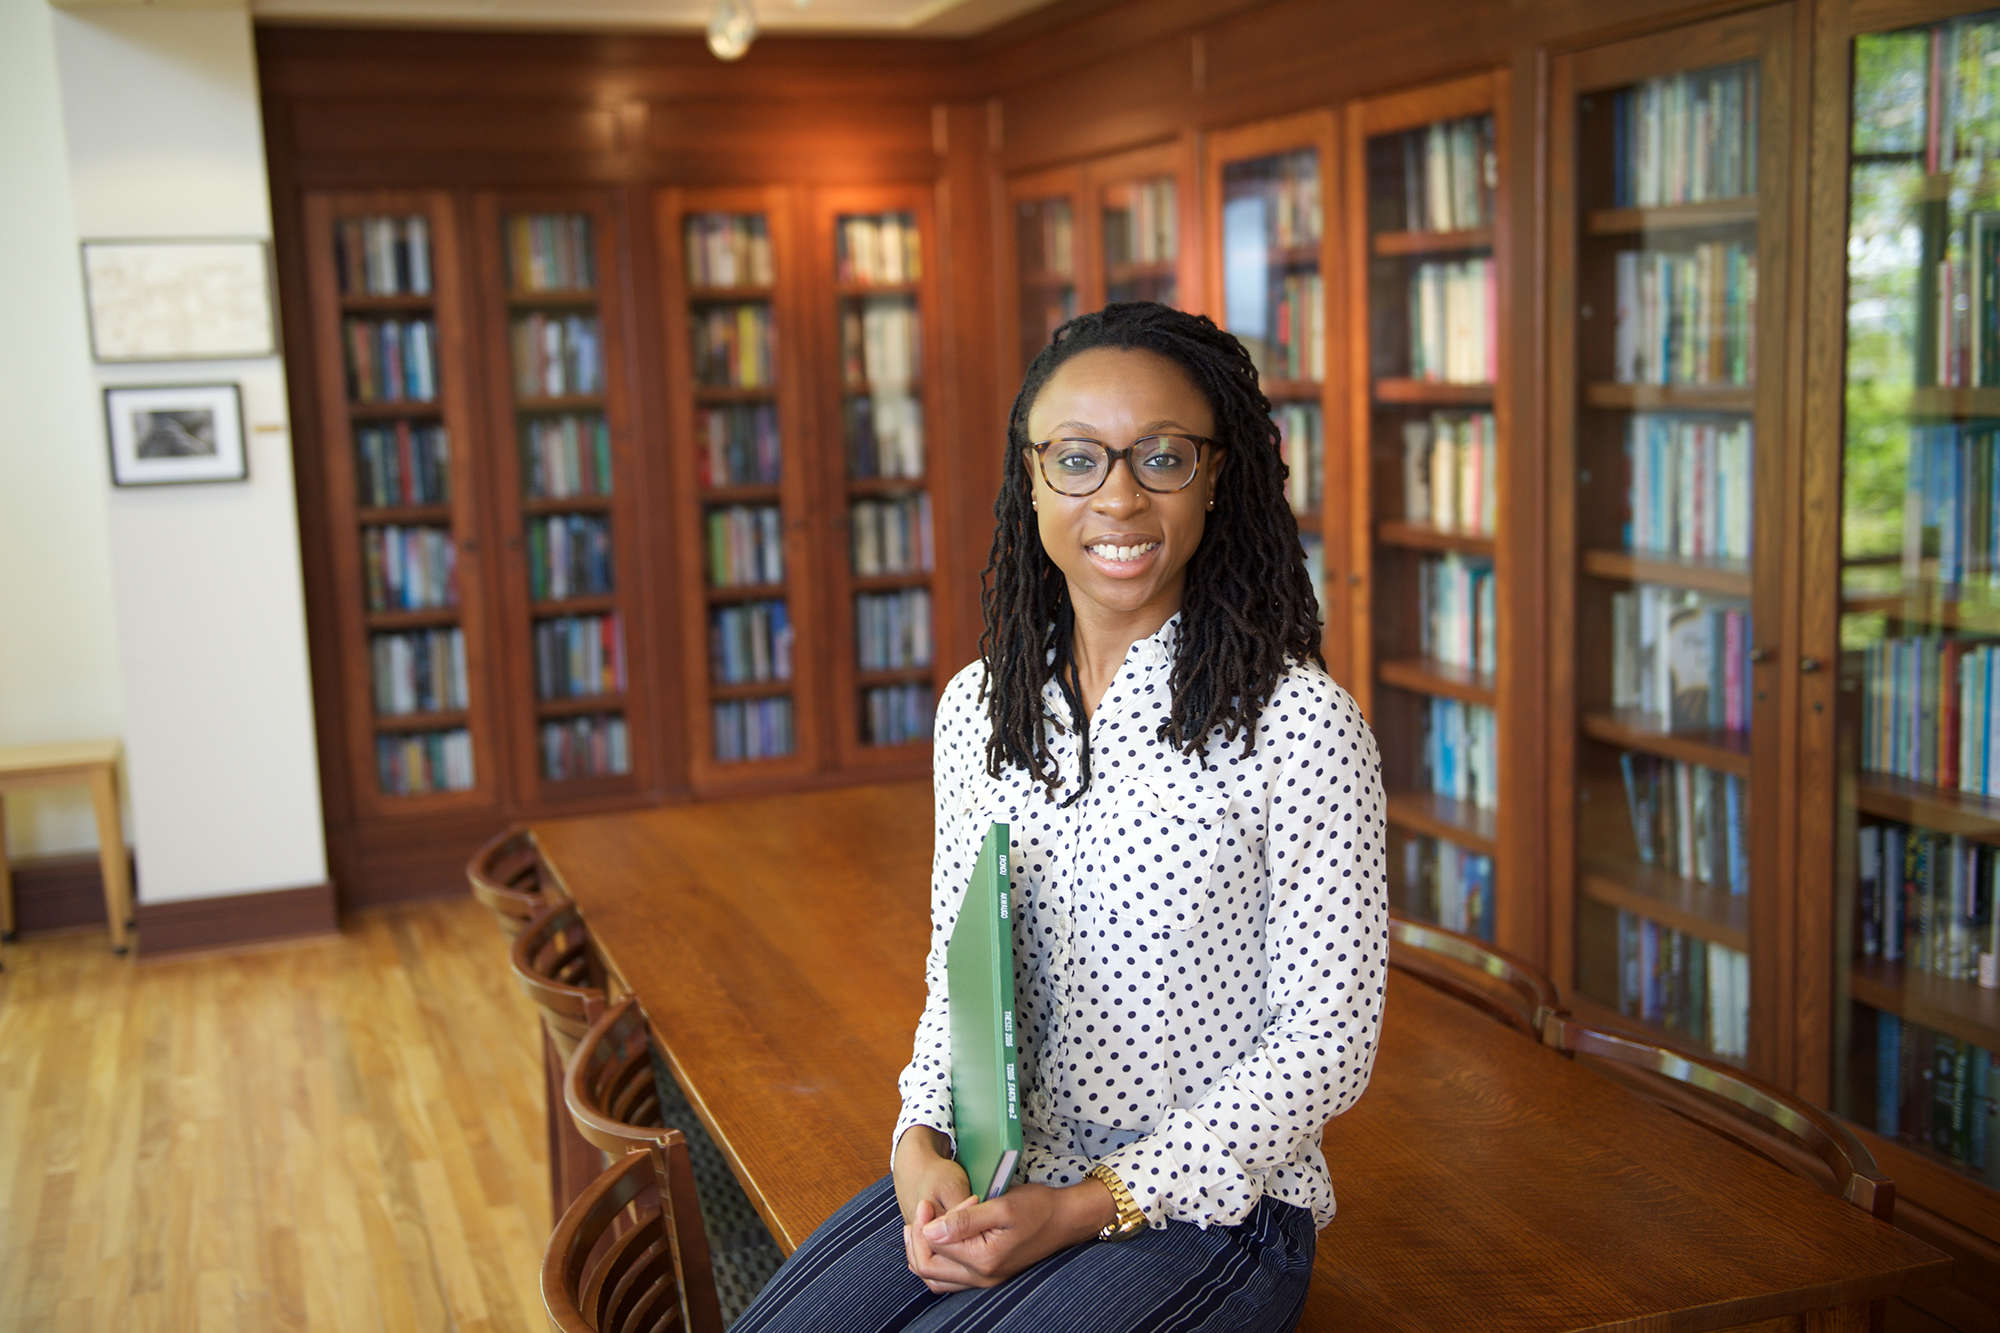 Mgbechi Erondu, a graduate of the University of Iowa Carver College of Medicine and an anesthesiology resident at Baylor College of Medicine